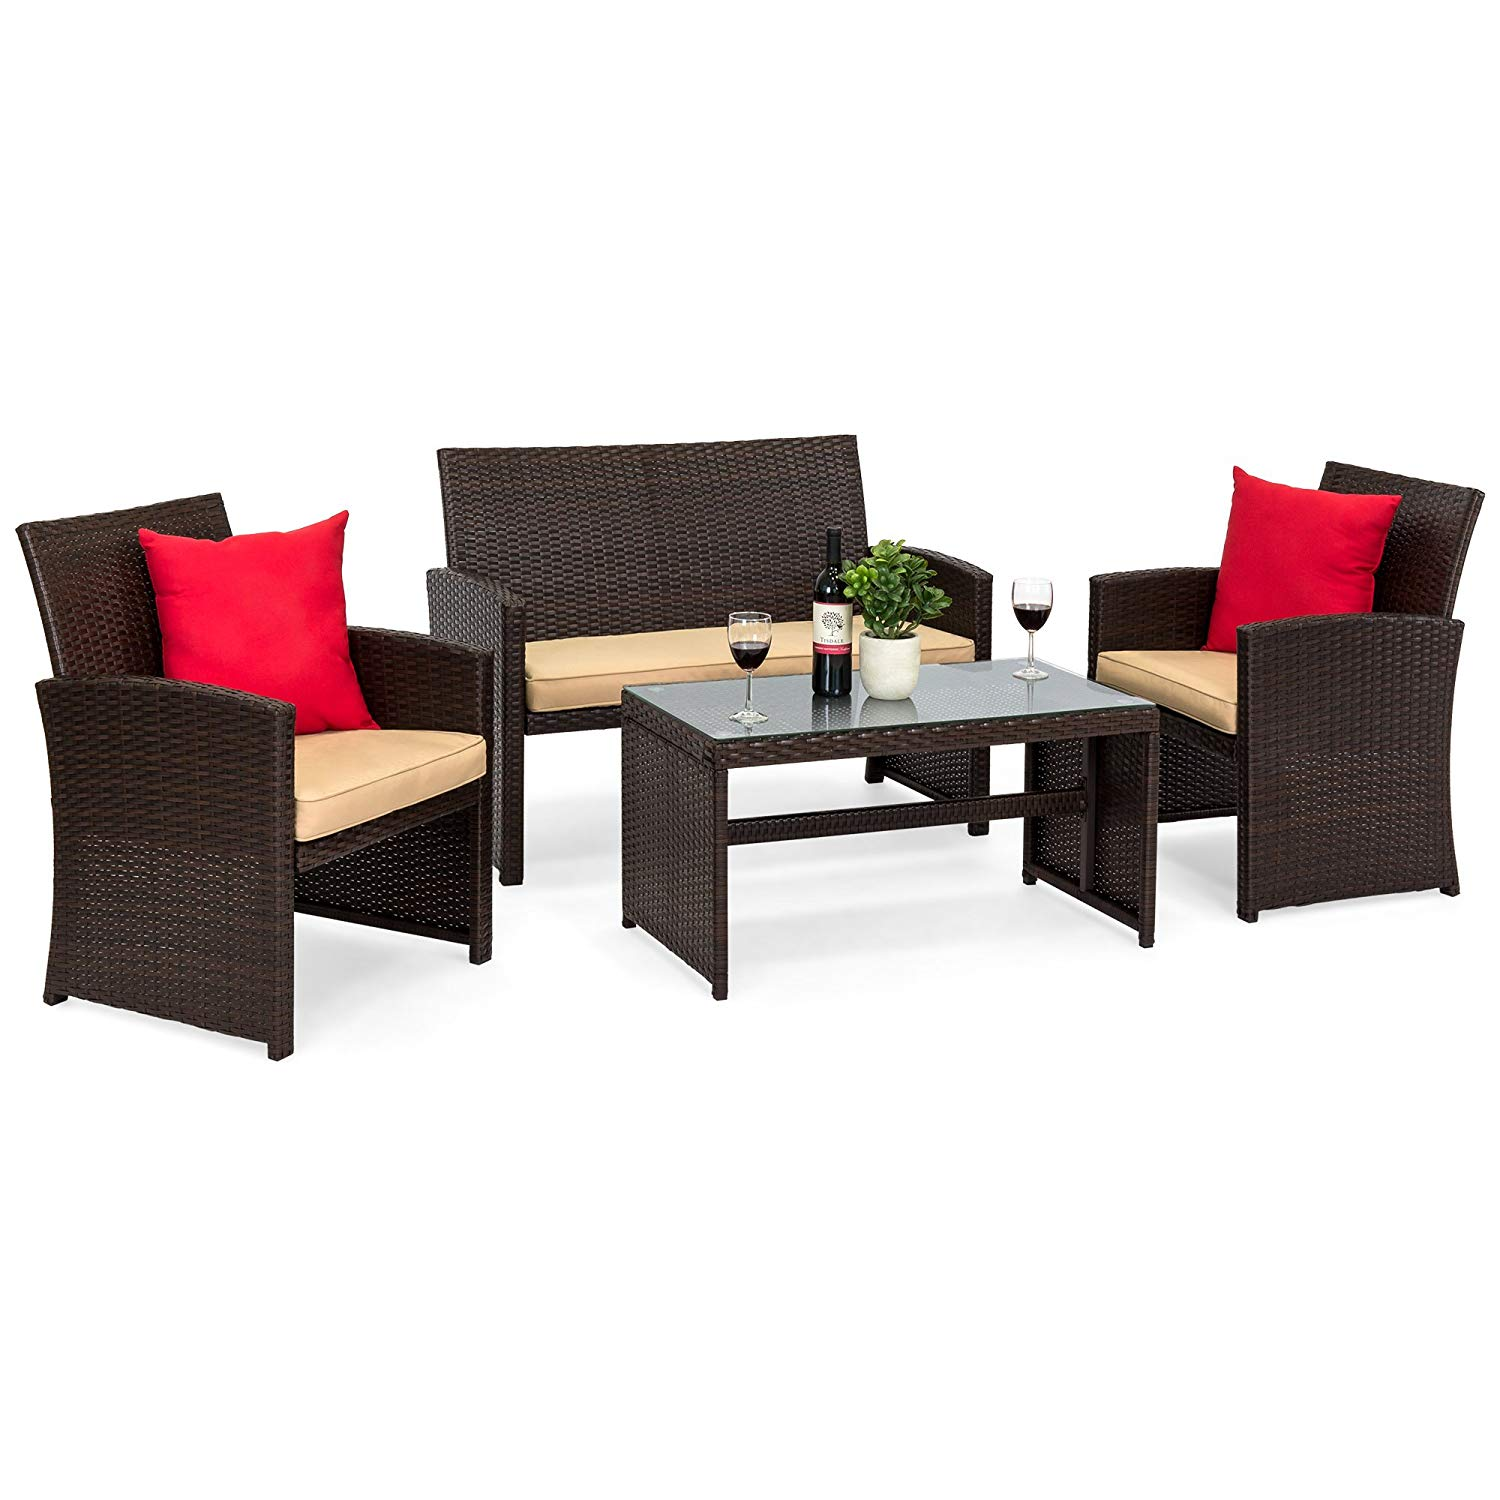 best choice products piece wicker patio furniture set outdoor side table calgary tempered glass sofas cushioned seats brown garden ikea ott acrylic with shelf clip light black and